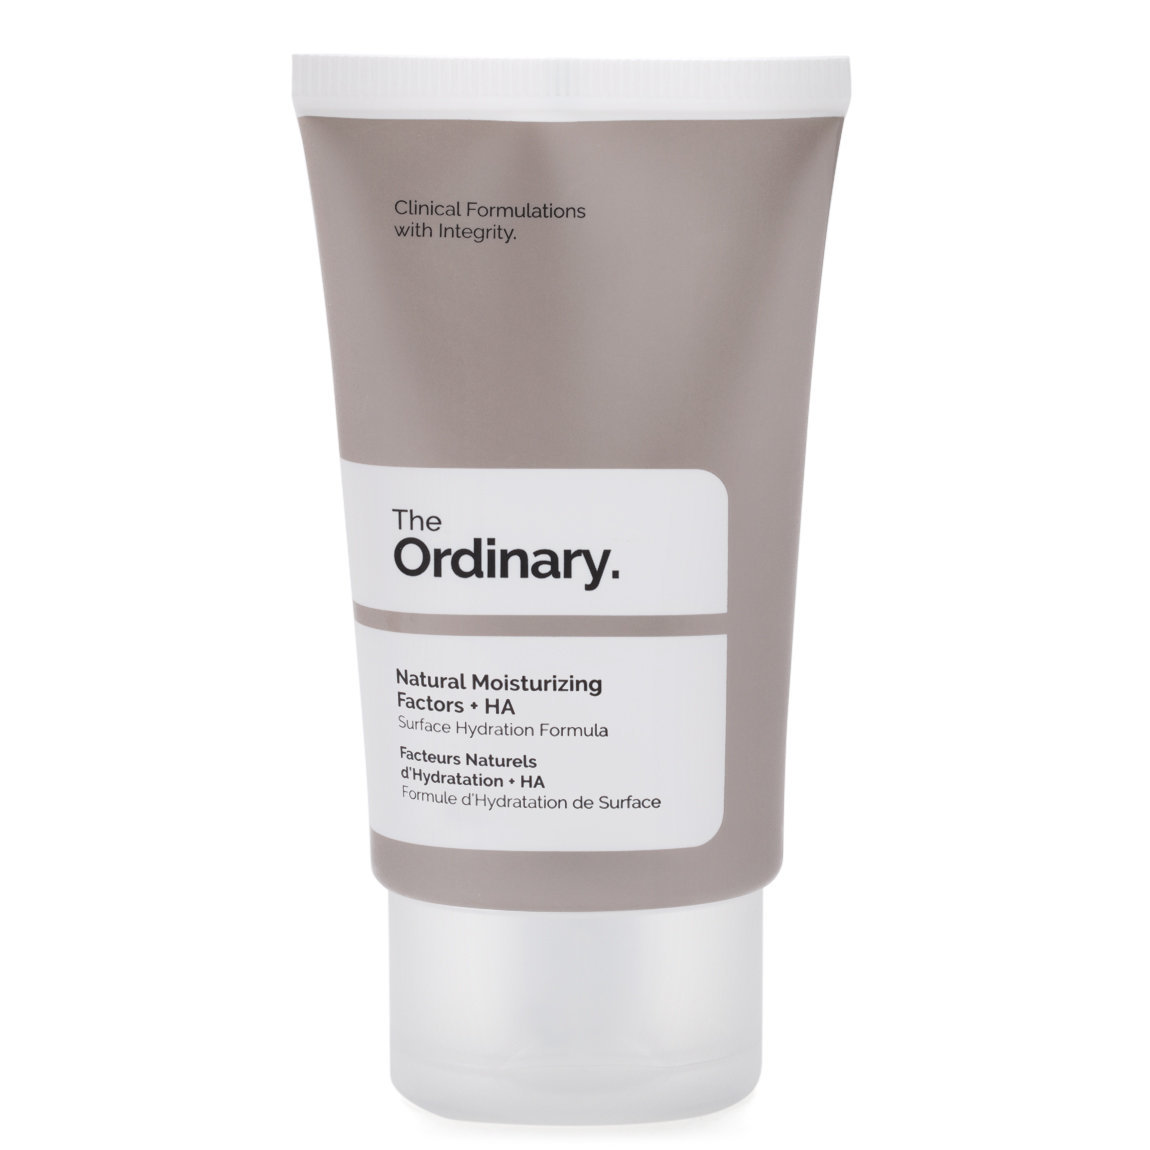 Ordinary Natural Moisturizing Factors + HA